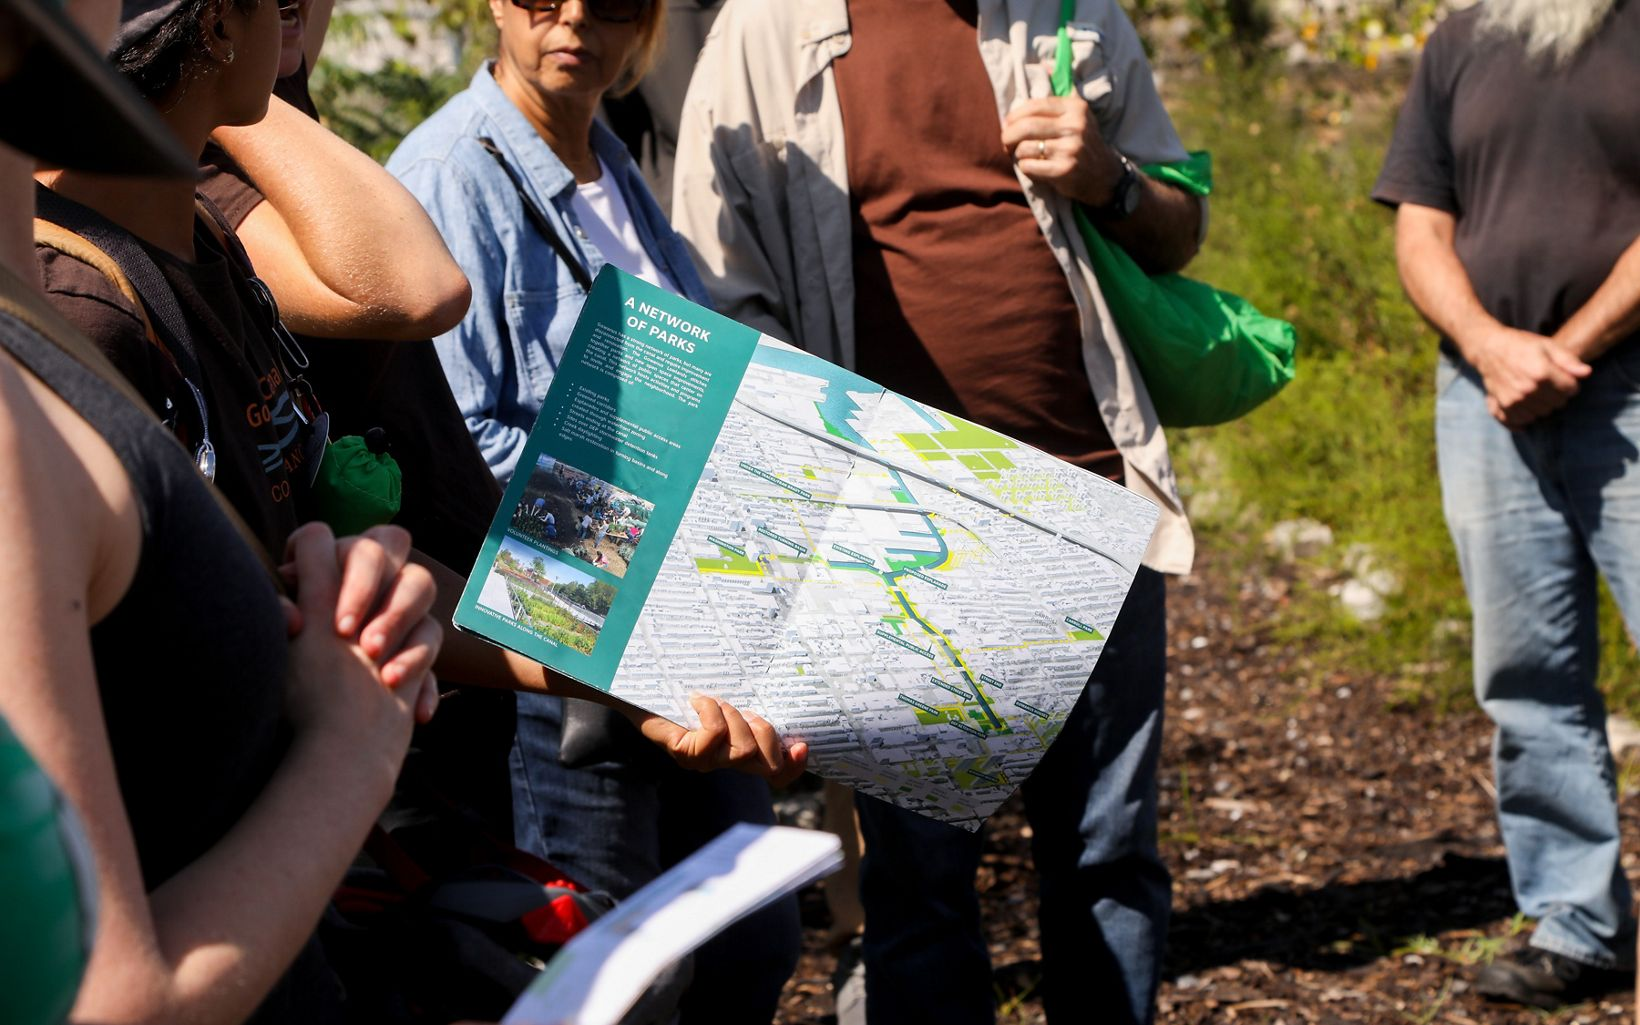 Maps provided by the Gowanus Canal Conservancy showcase the network of parks in the area.